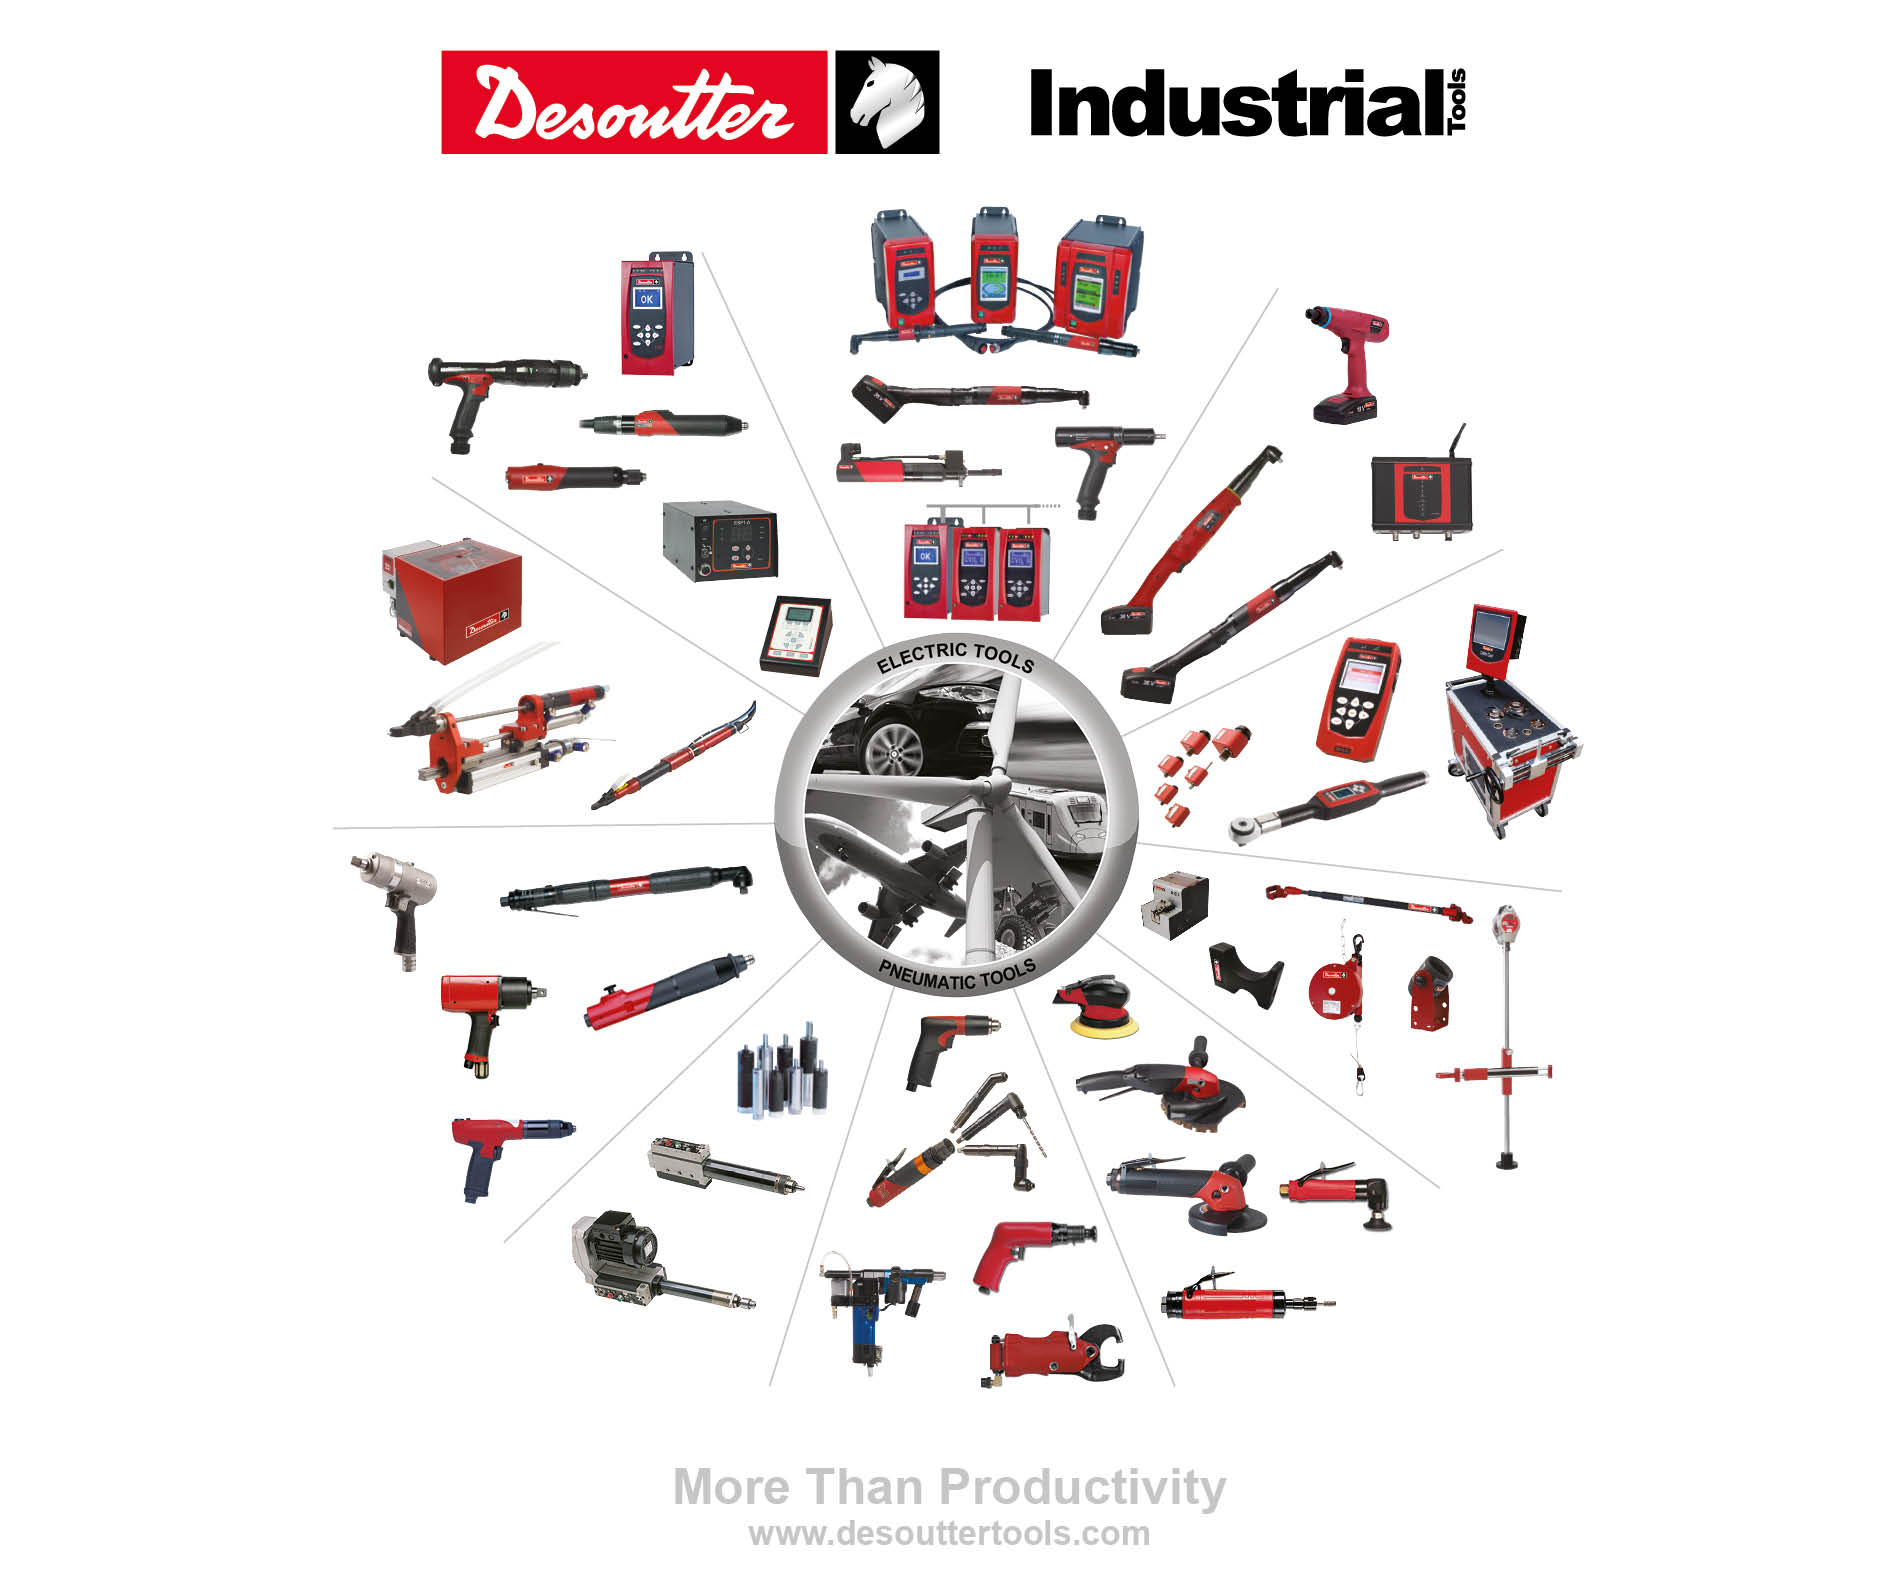 Desoutter Industrial Tools: More Than Productivity in Vietnam